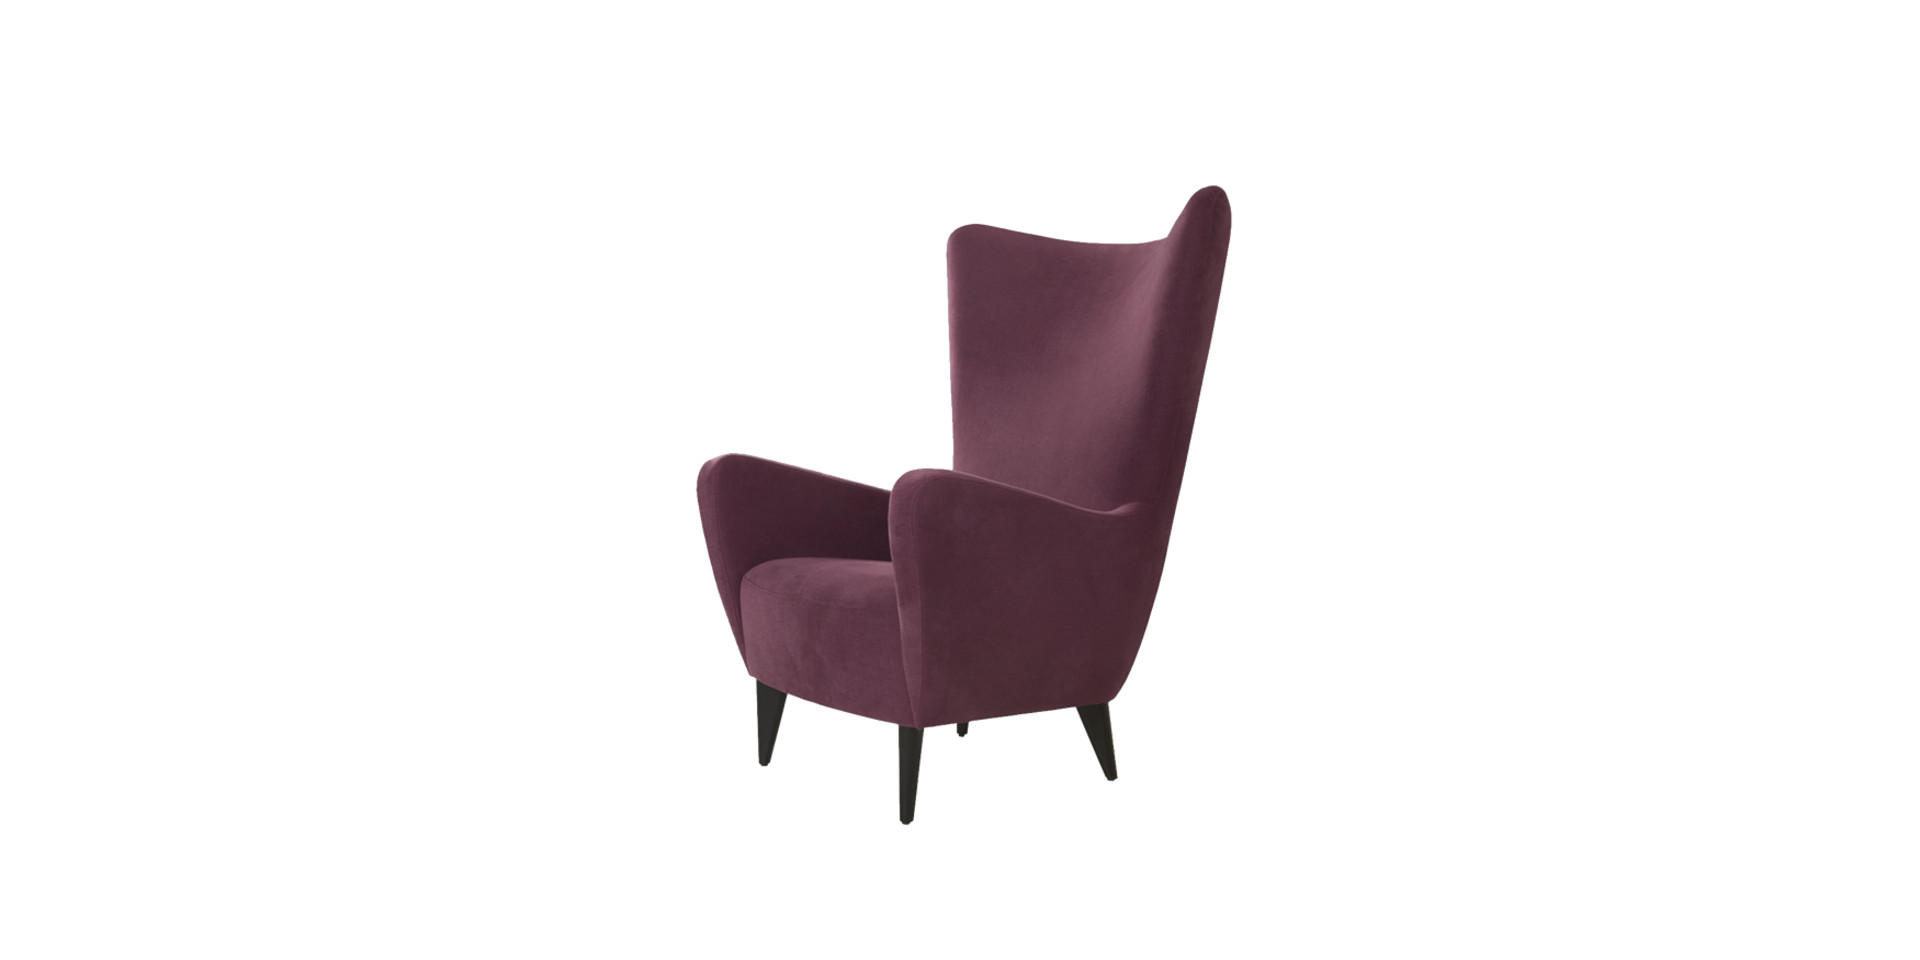 sits-kato-fauteuil-armchair_caleido1524_aubergine_4